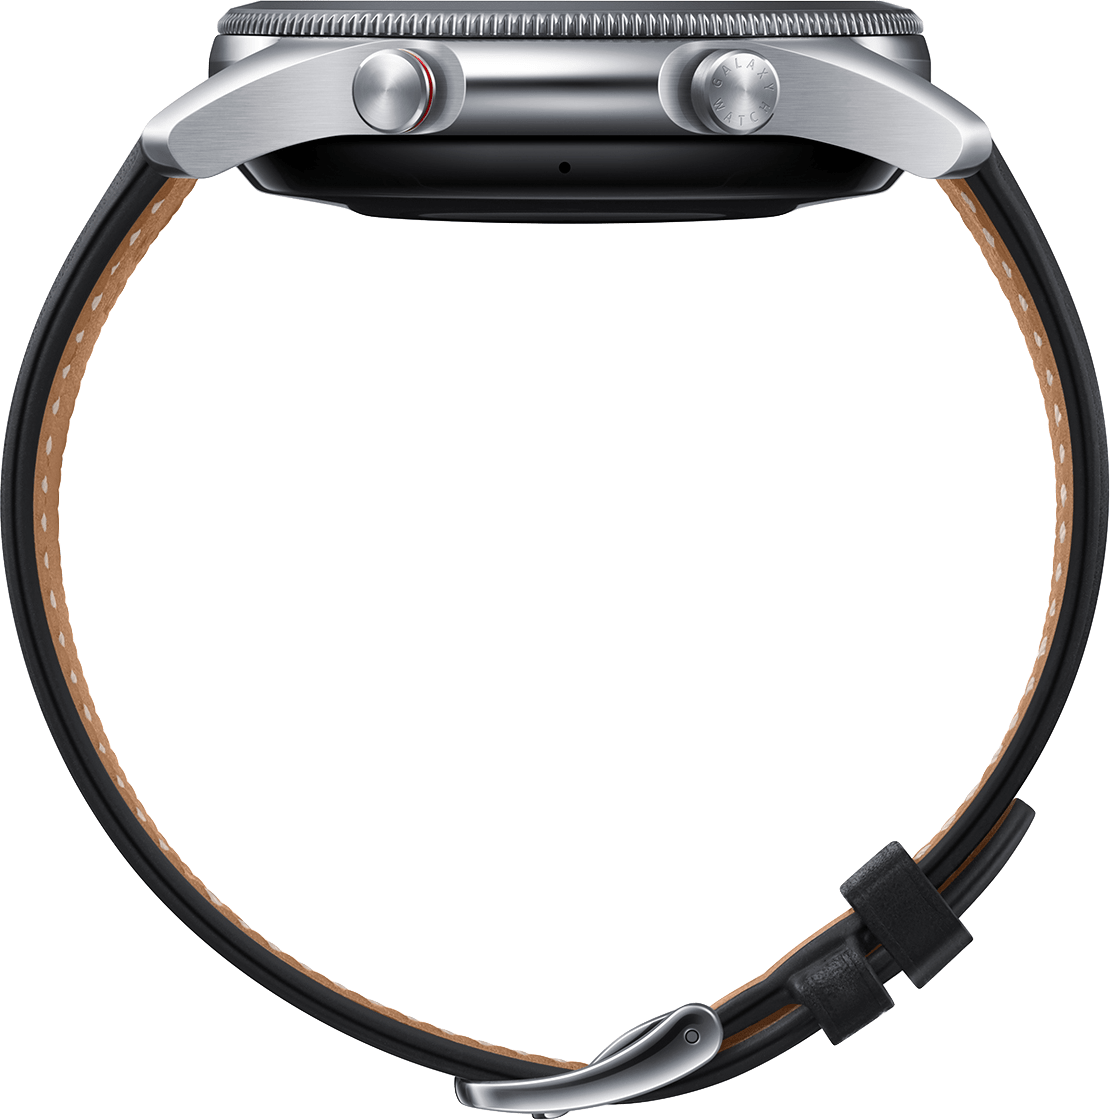 Mystic Silver Samsung Galaxy Watch 3 (LTE), 45mm Stainless steel case, Real leather band.4